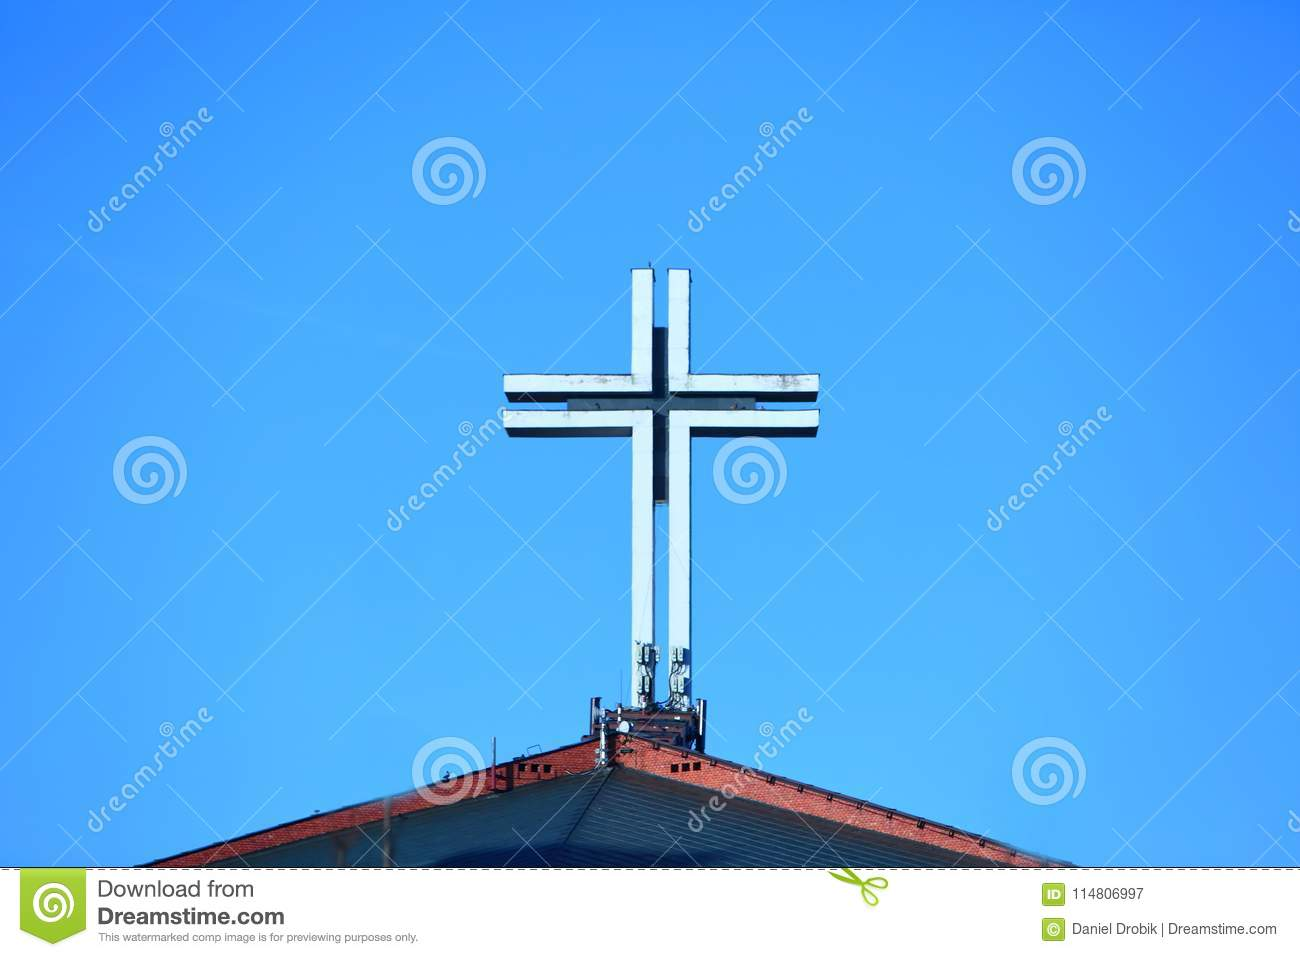 Usually On The Top Of The Church There Is A Big Cross As A Symbol Of